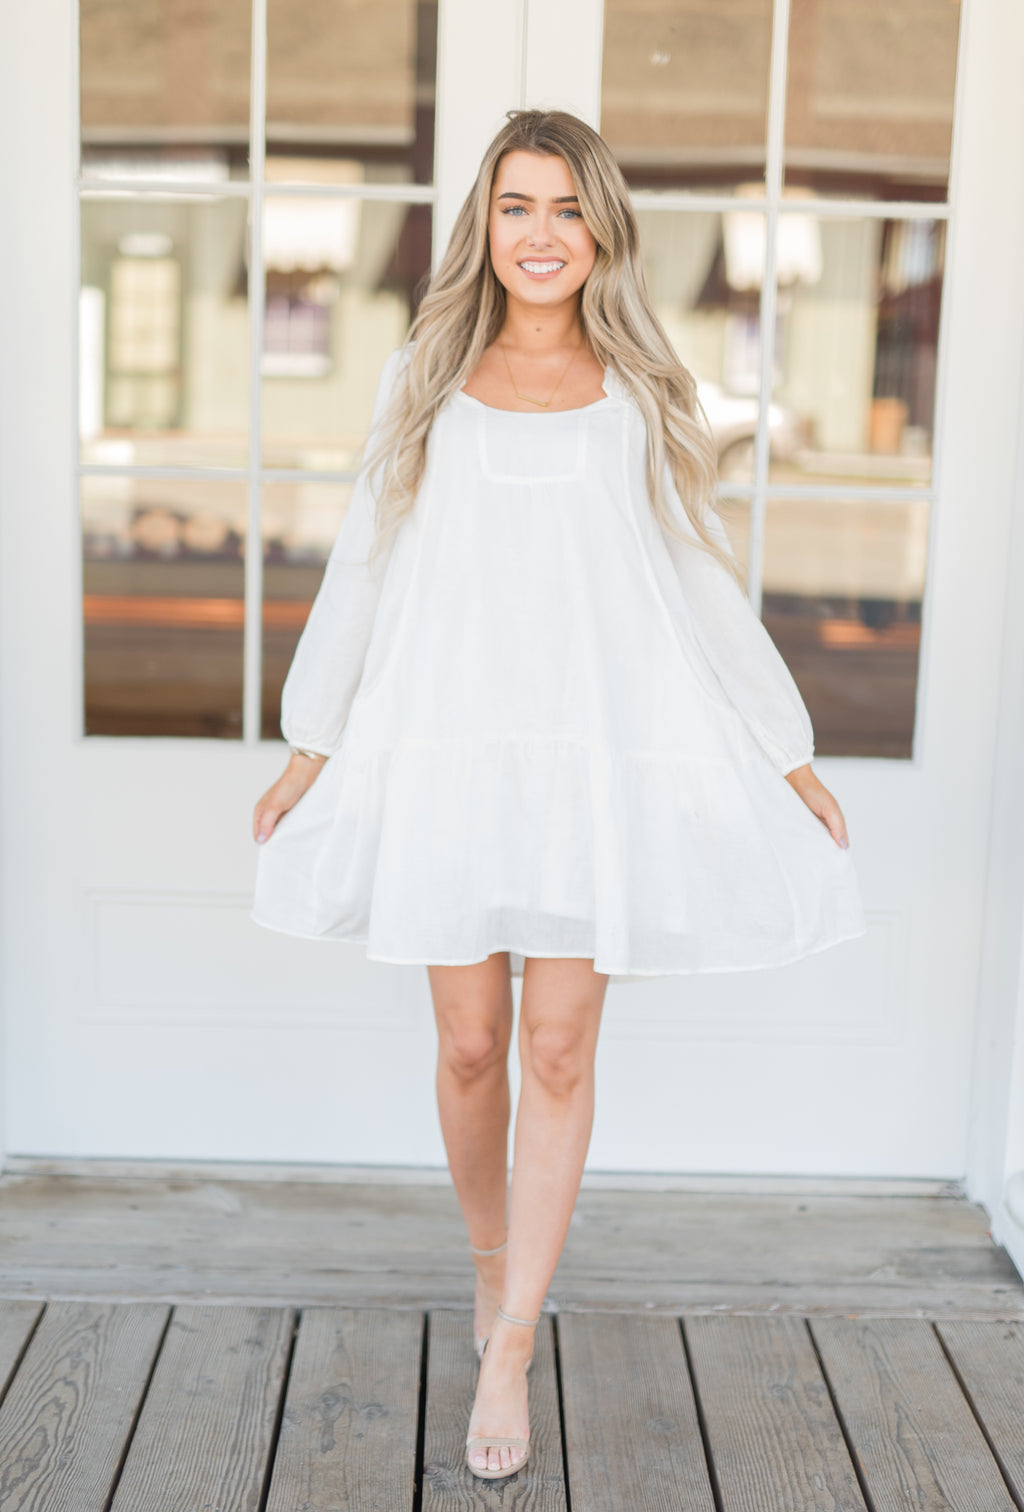 Marley White Babydoll Dress - llacie